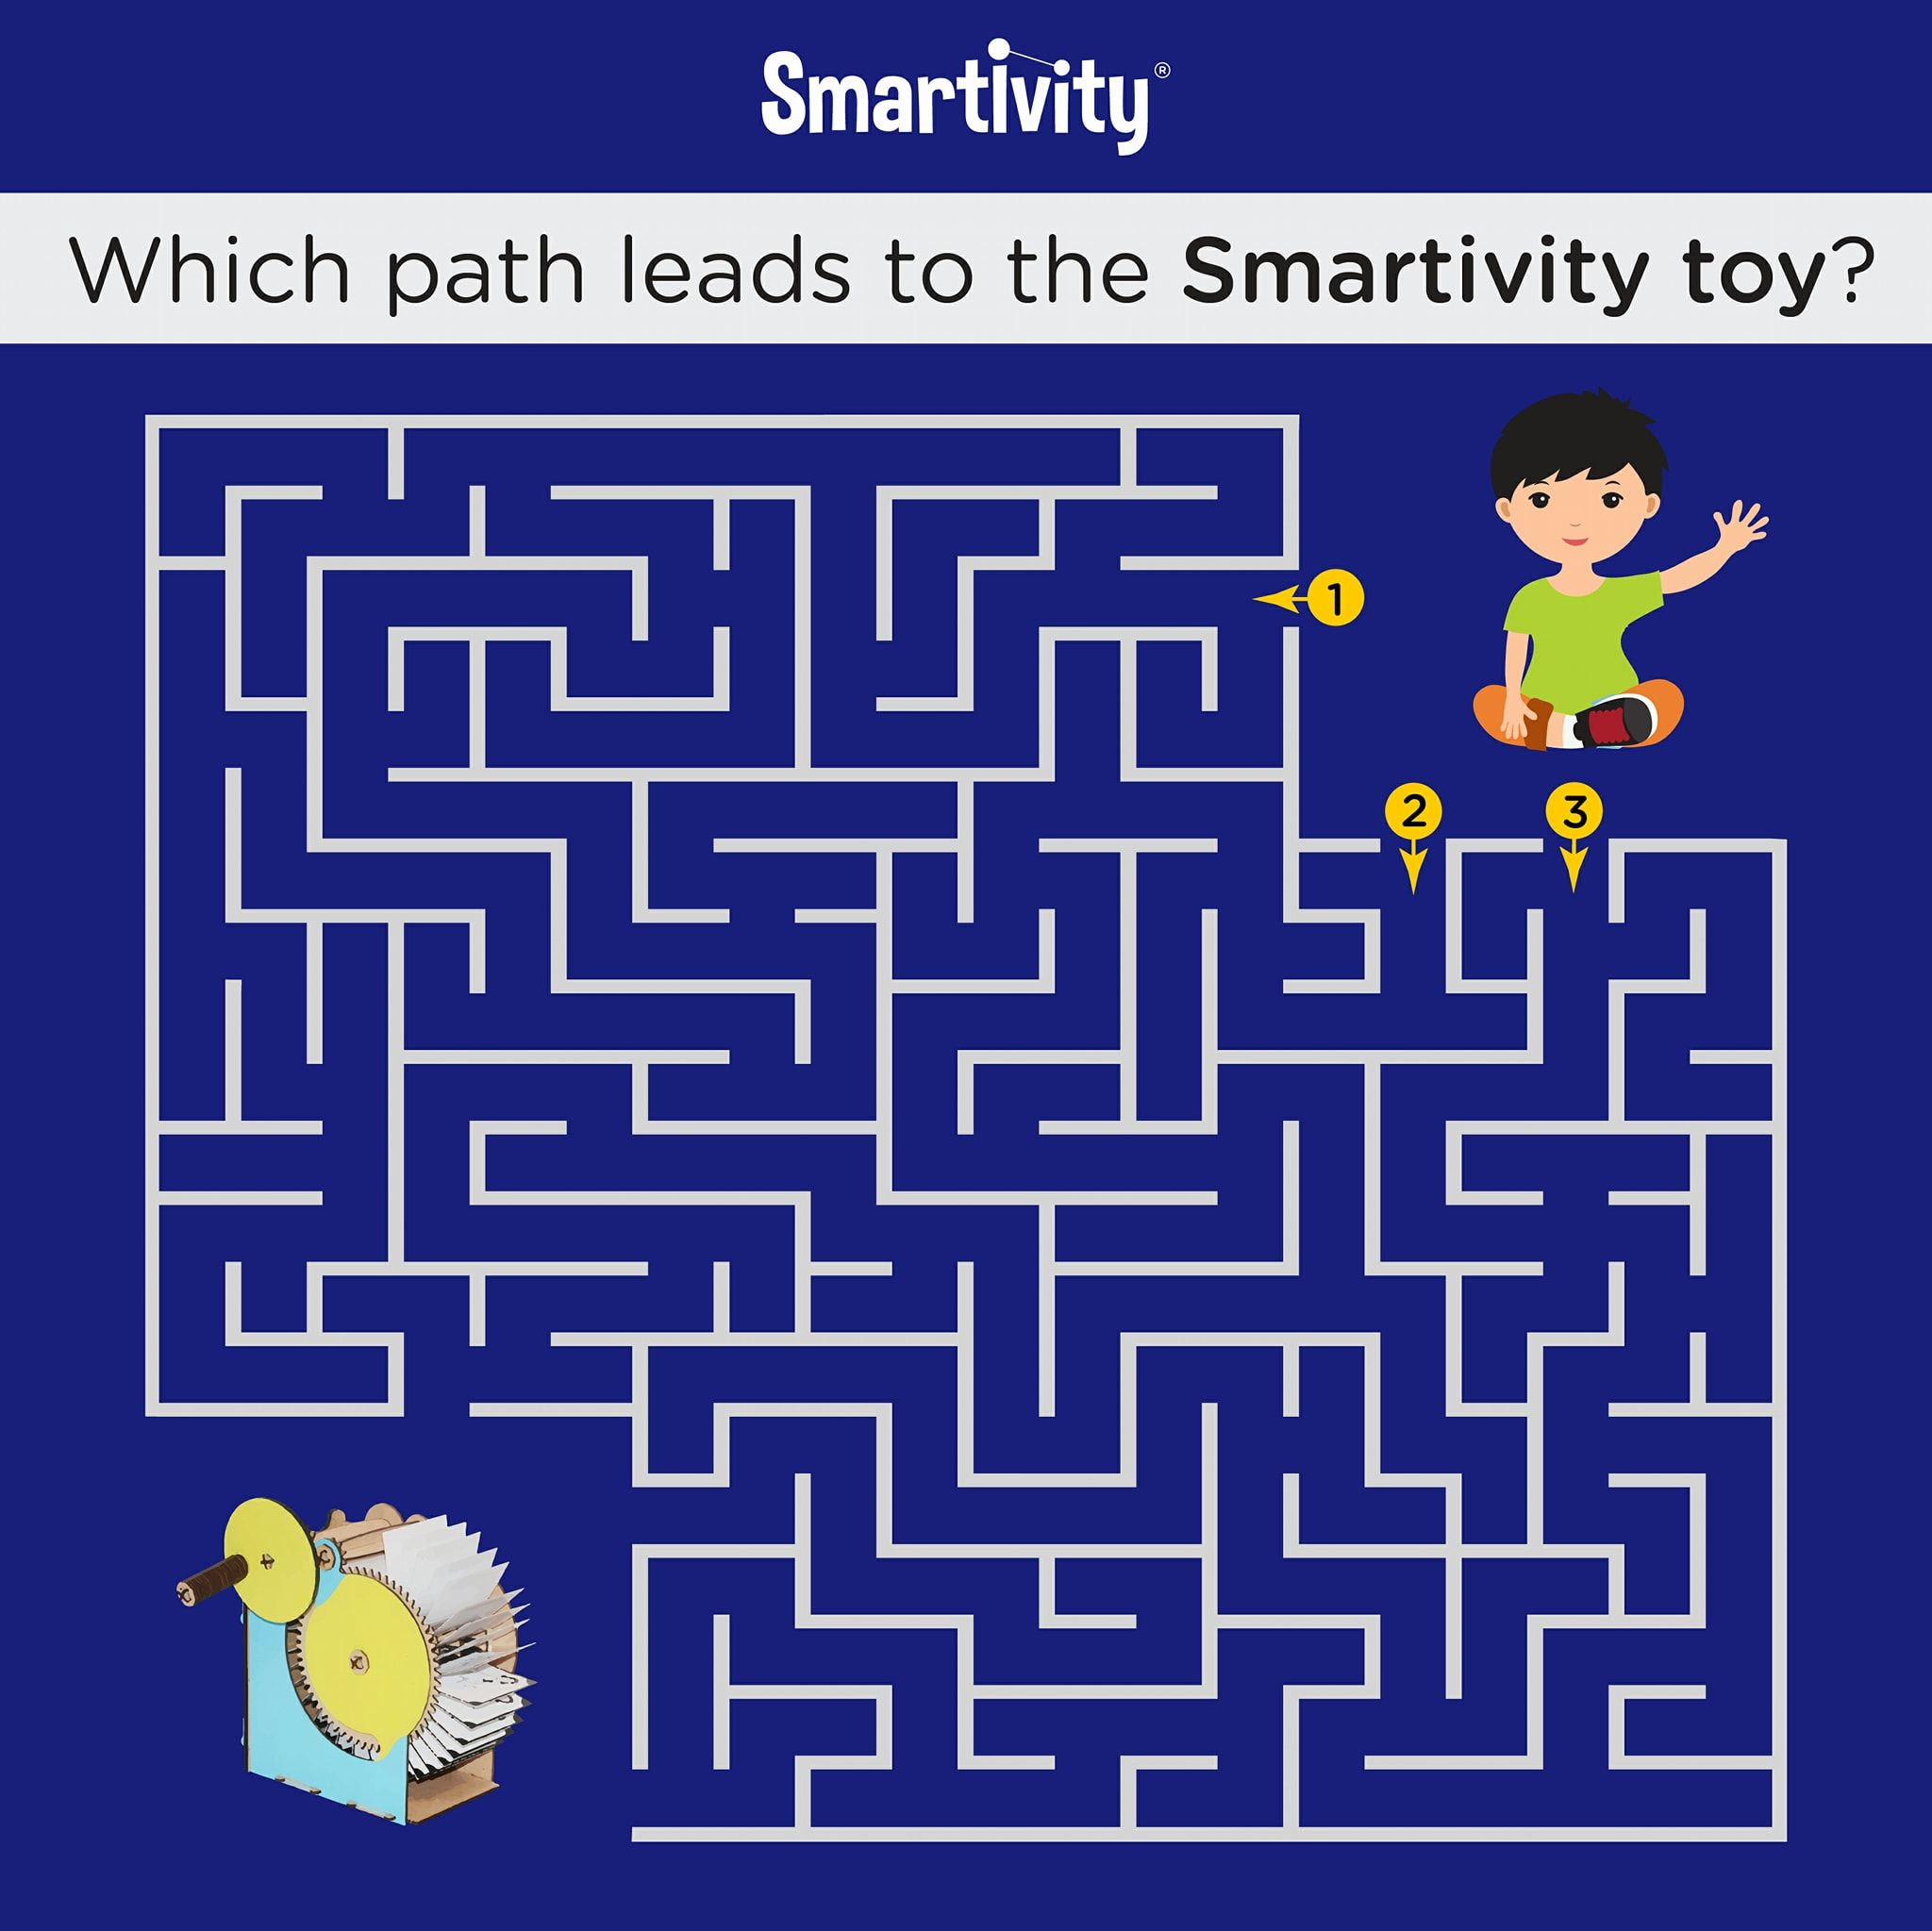 Can You Help The Kid Reach The Toy Smartivity